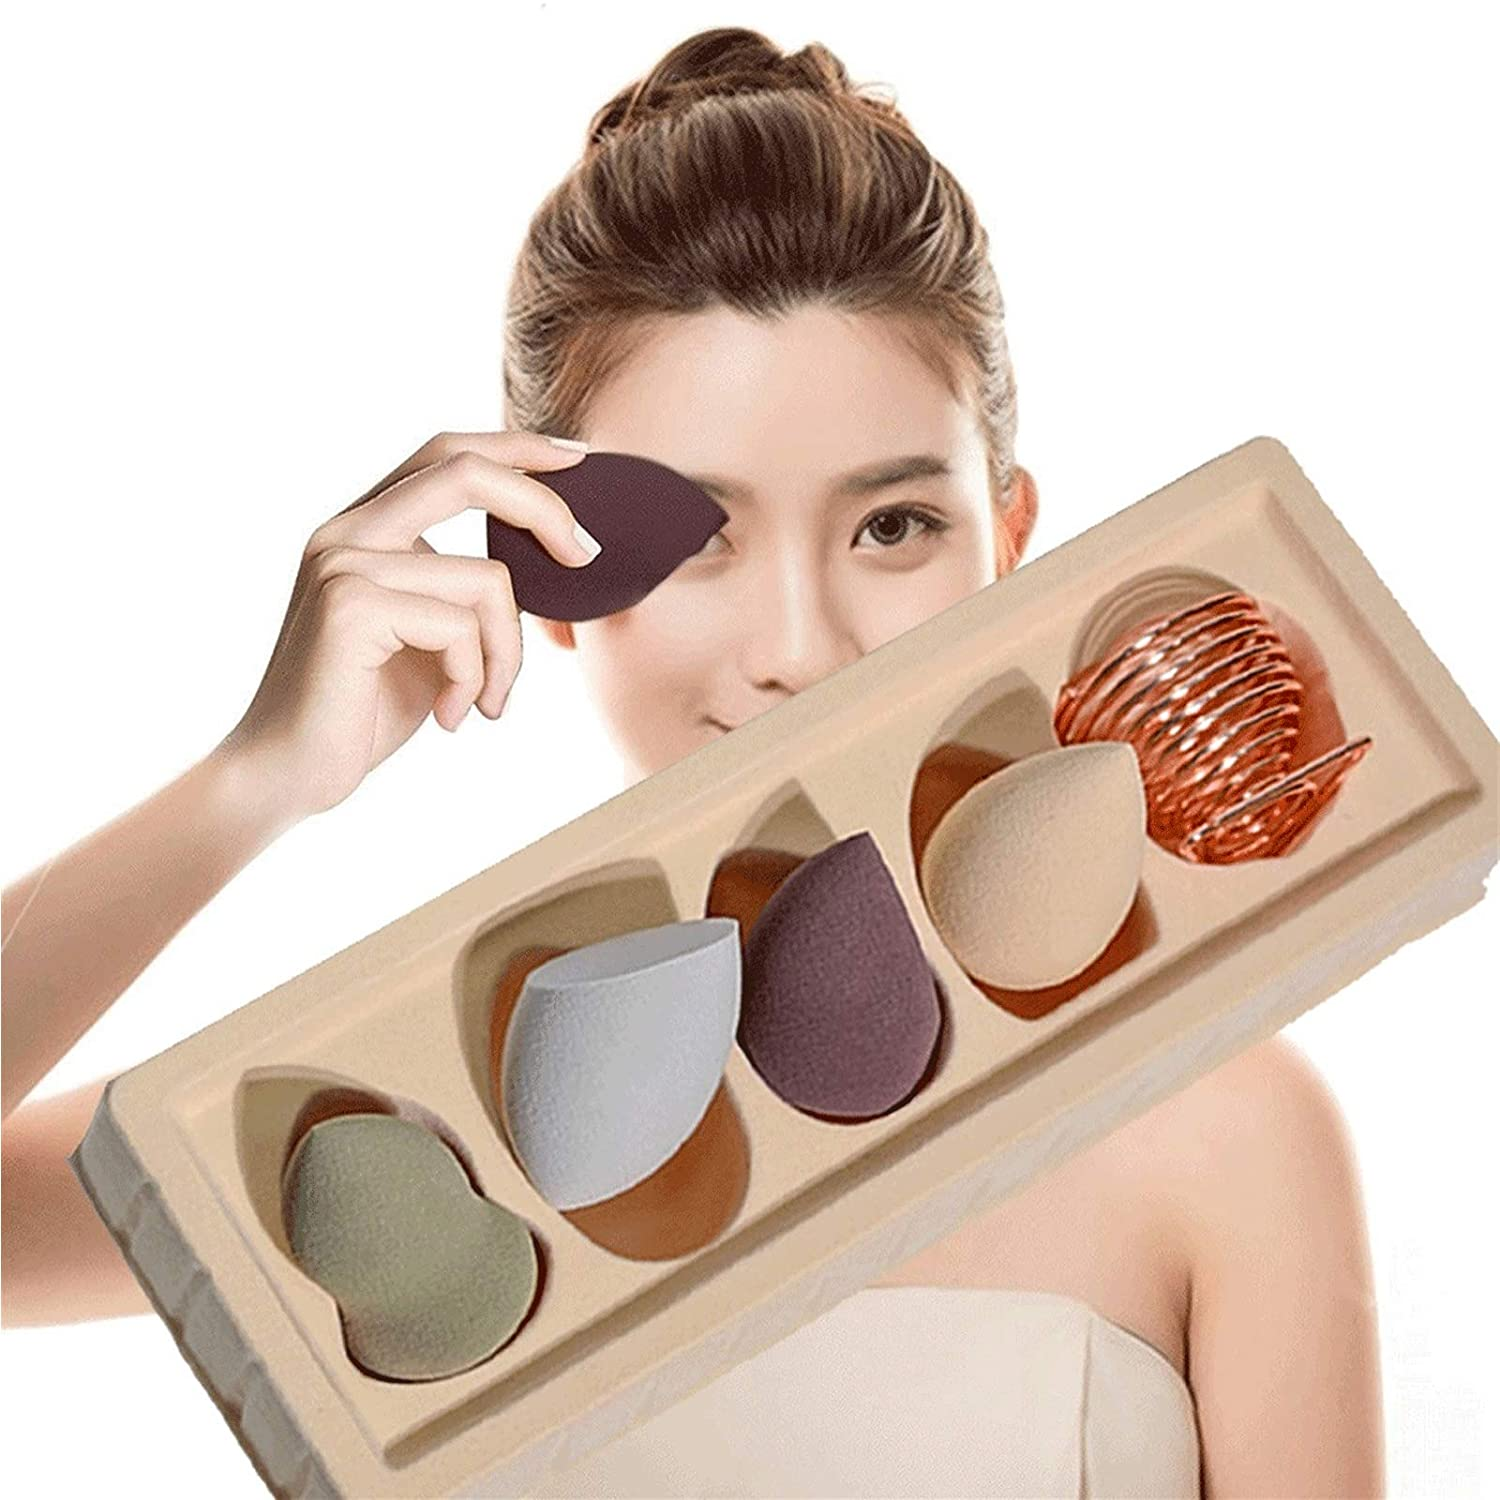 Makeup Sponge Set of 4 Pcs with Storage, Professional Soft Makeup Blender Latex Free Dry & Wet Use For Liquid Powder BB Cream and Sunscreen